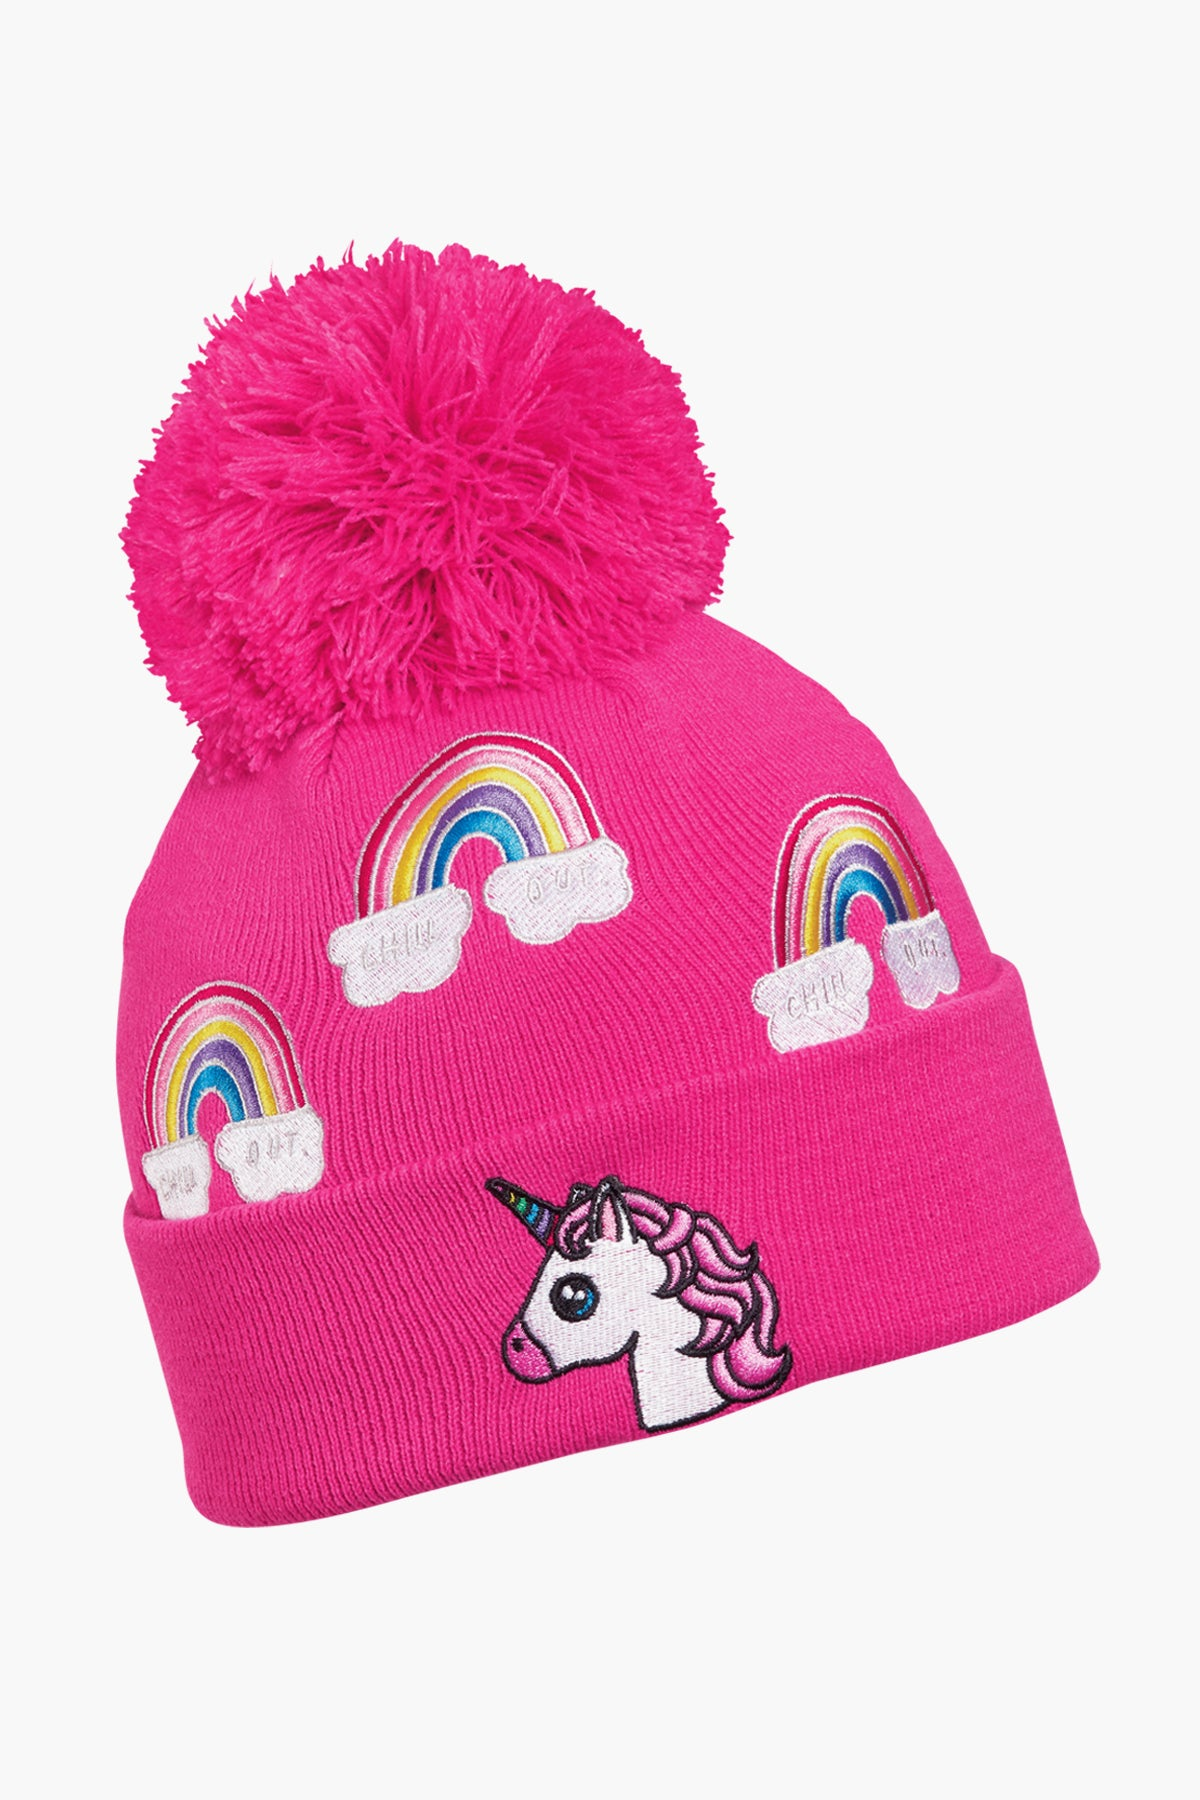 Turtle Fur Unicorn Kids Hat - Pink